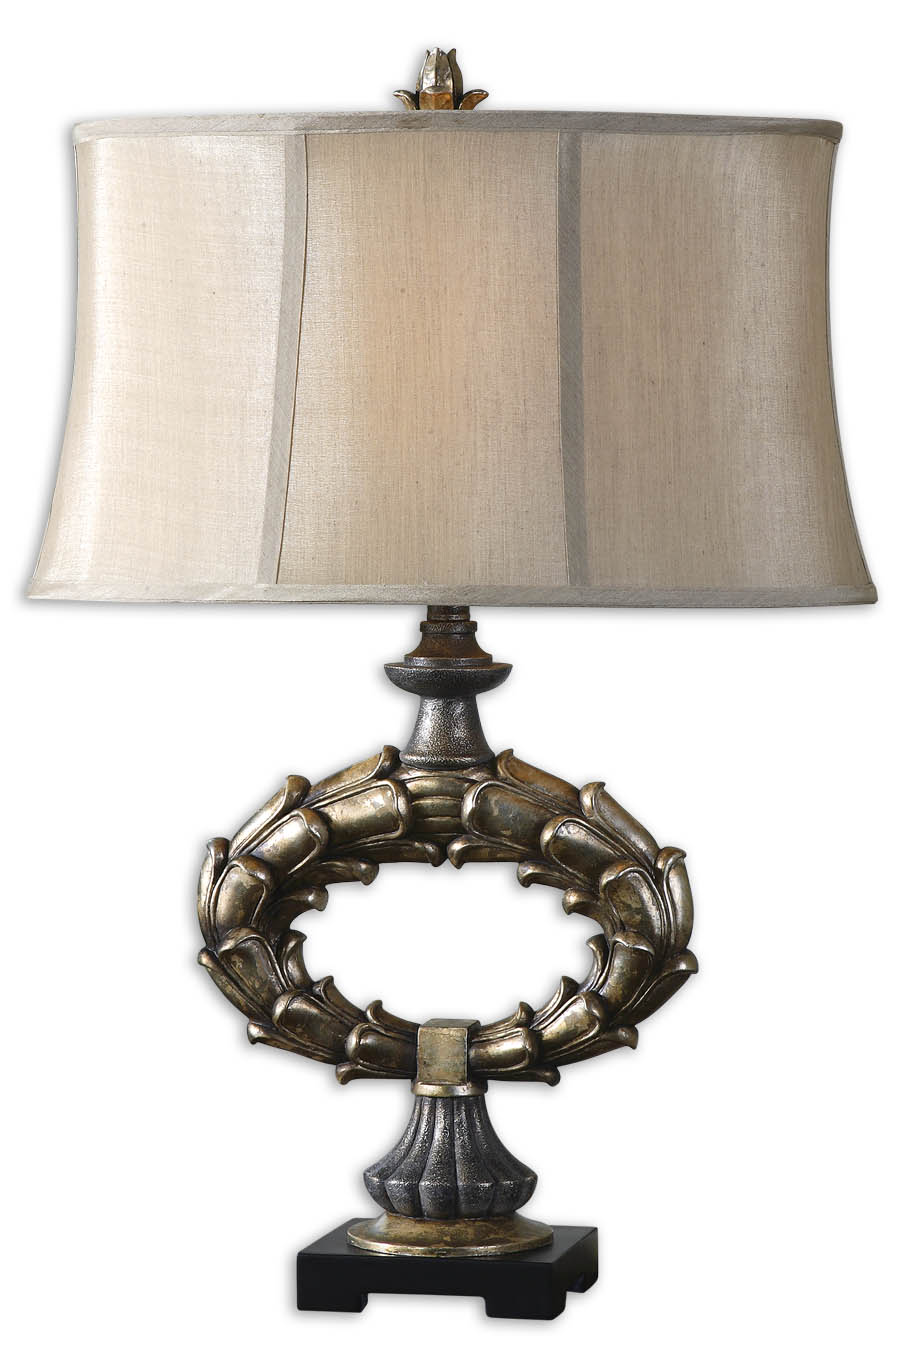 Silver Table Lamps : Uttermost 26849 Genesee Silver Table Lamp $184.80 -